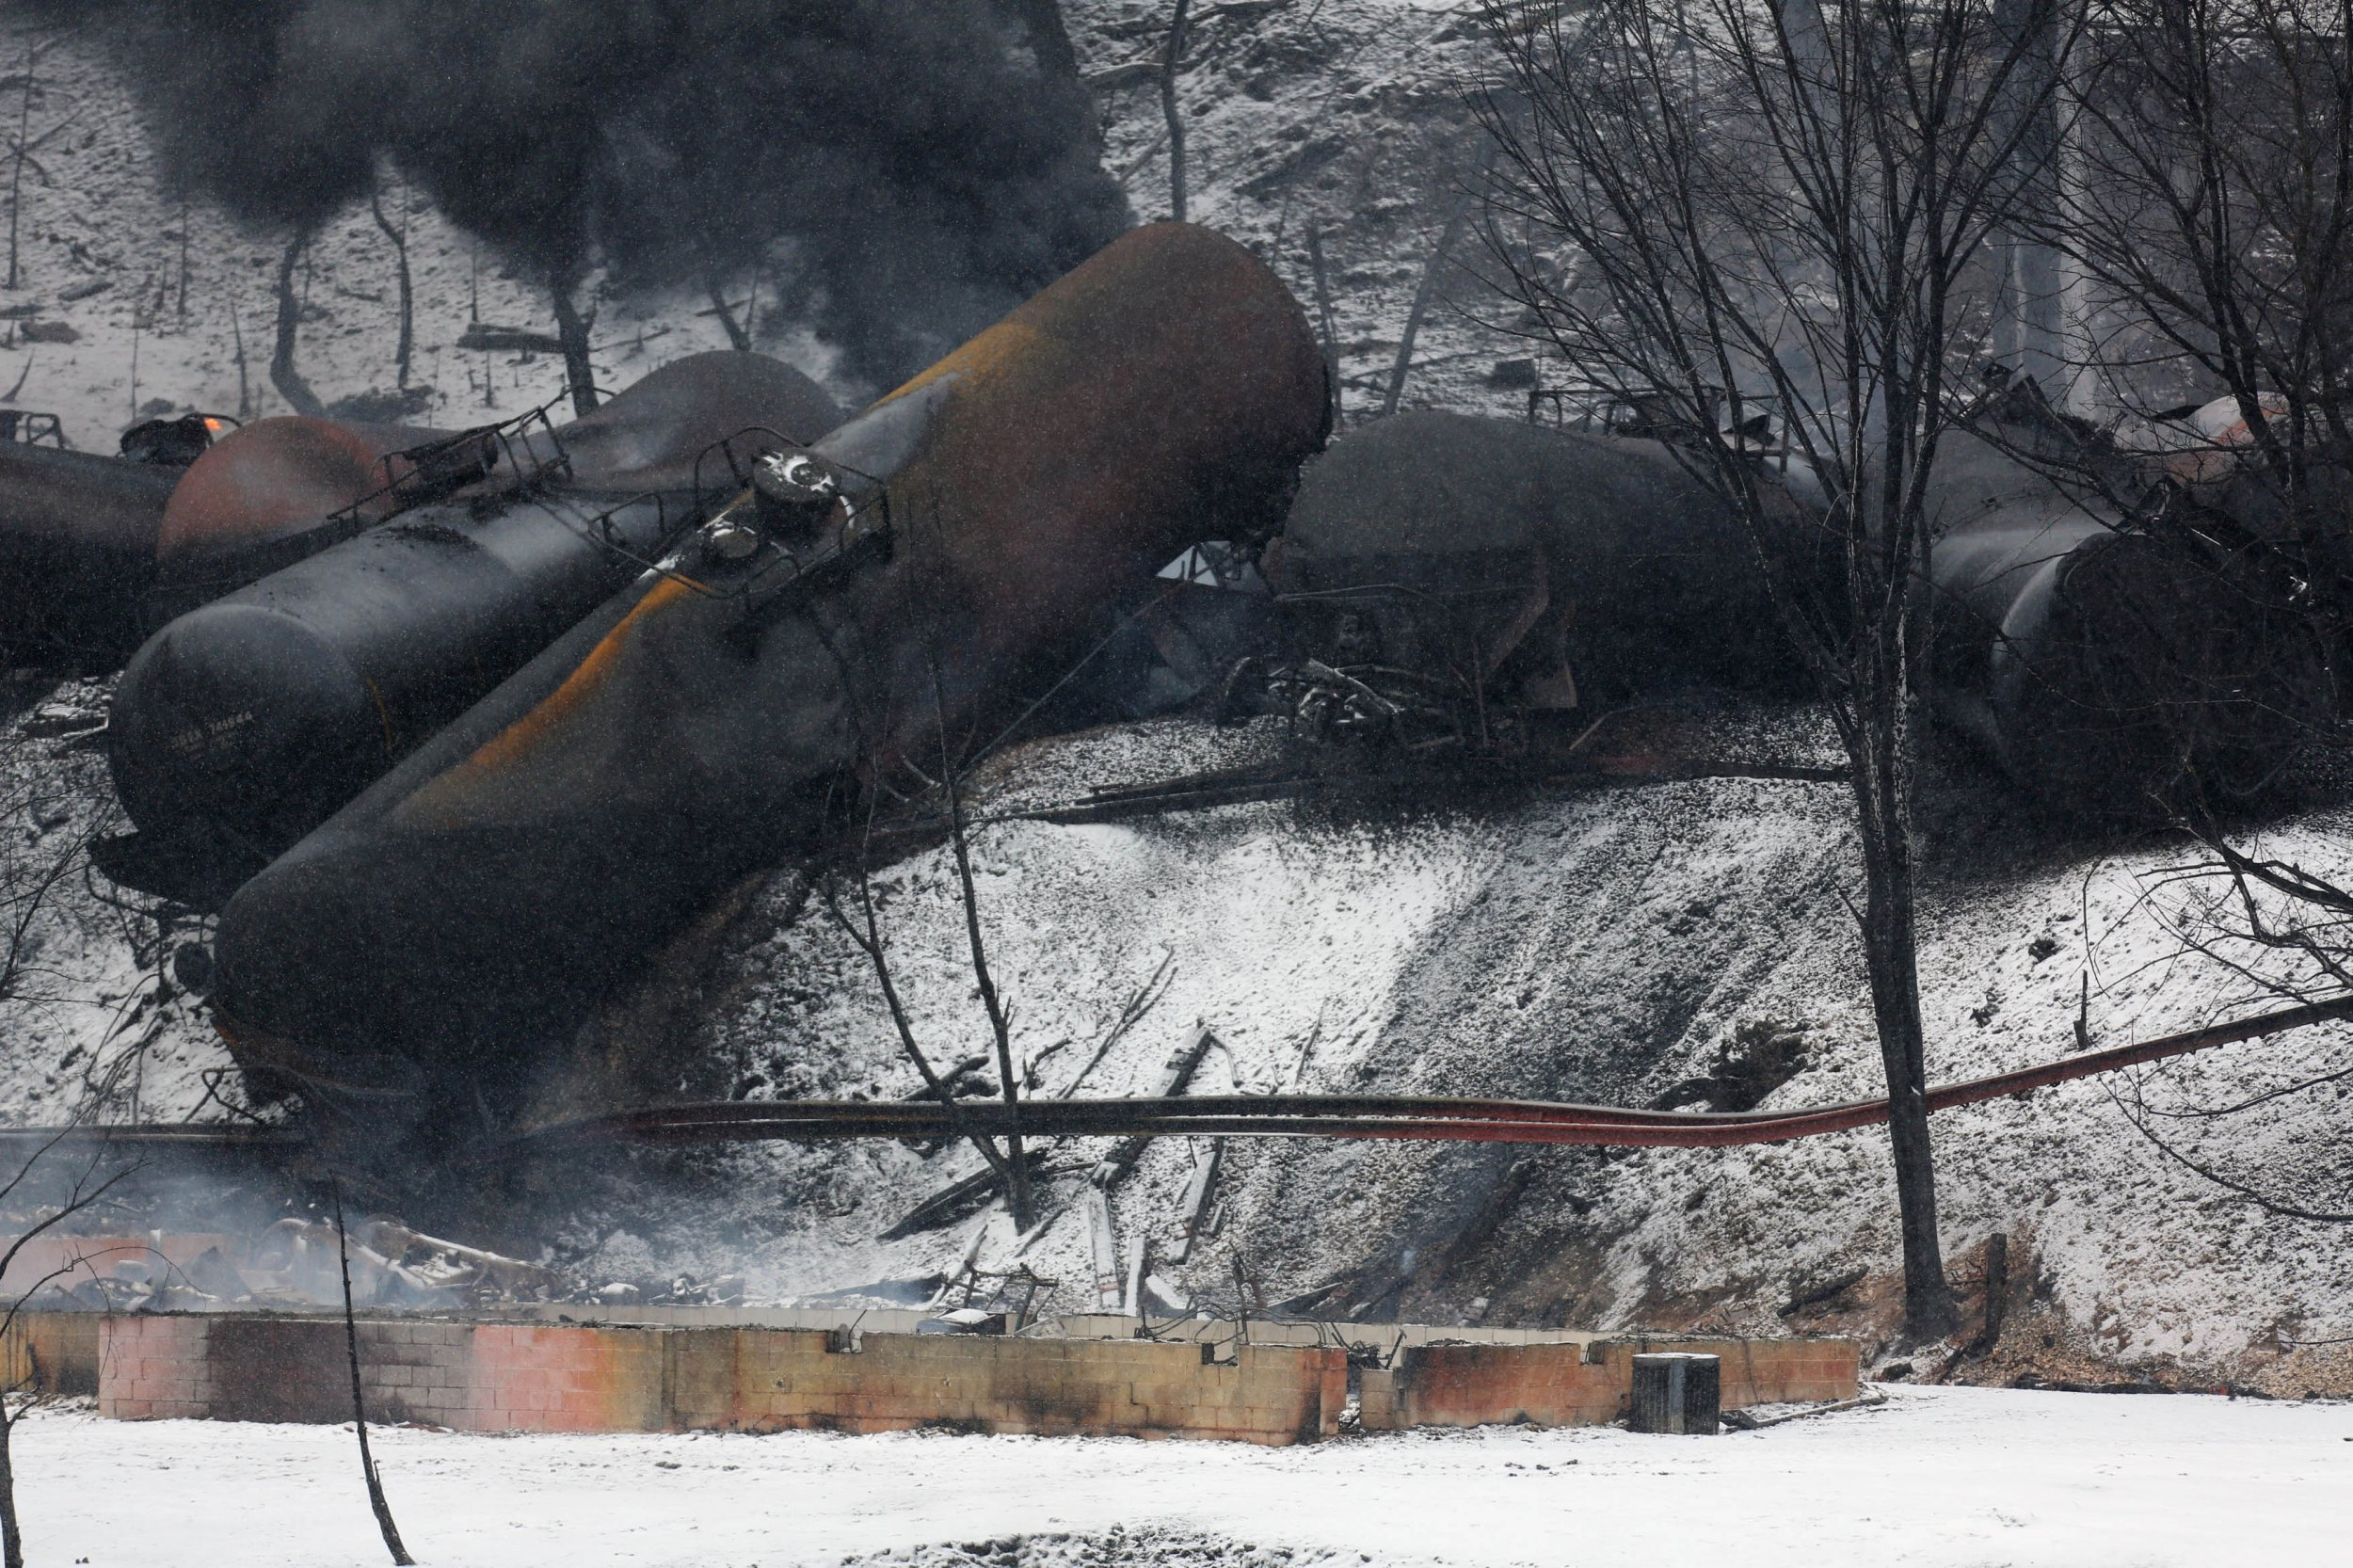 West Virginia train derailment